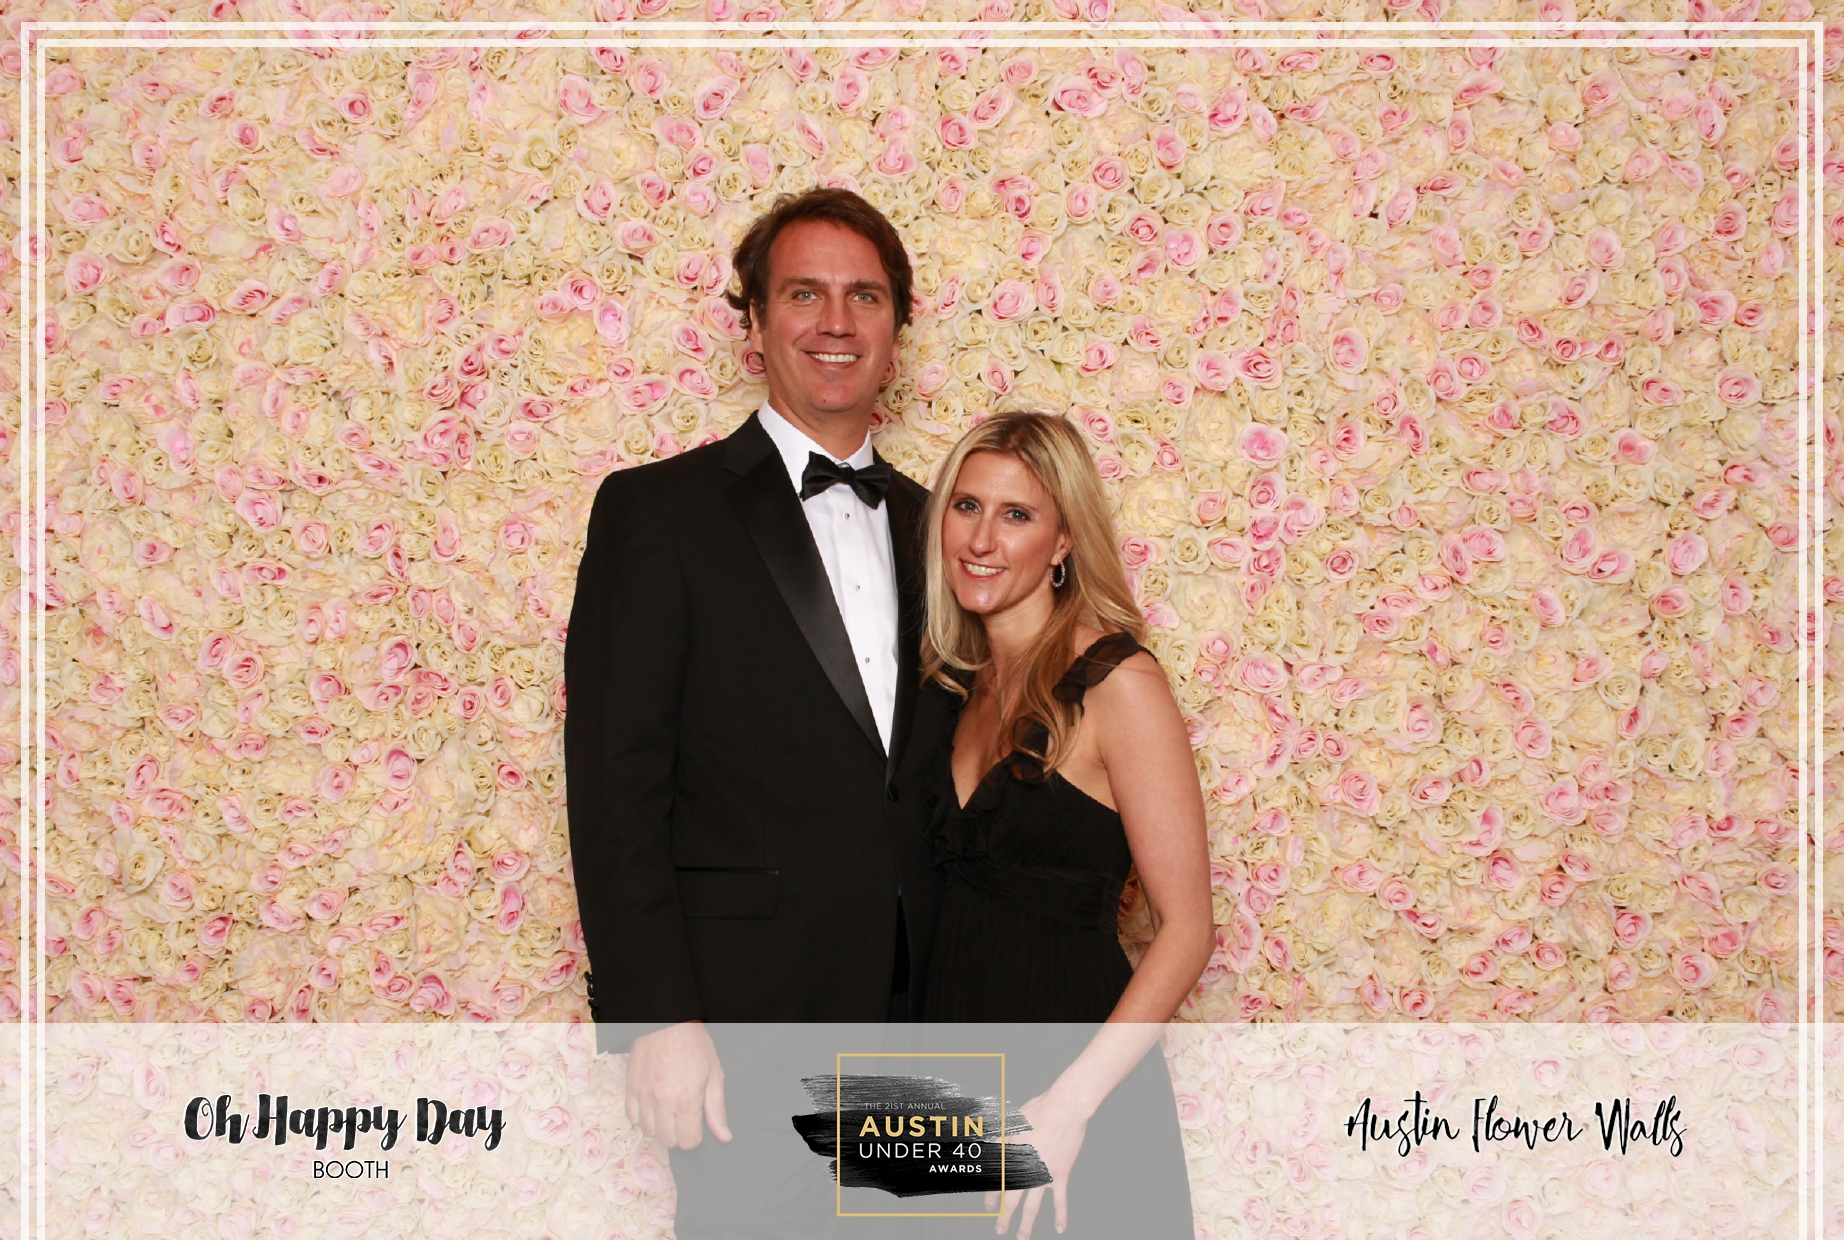 Oh Happy Day Booth - Austin Under 40-122.jpg